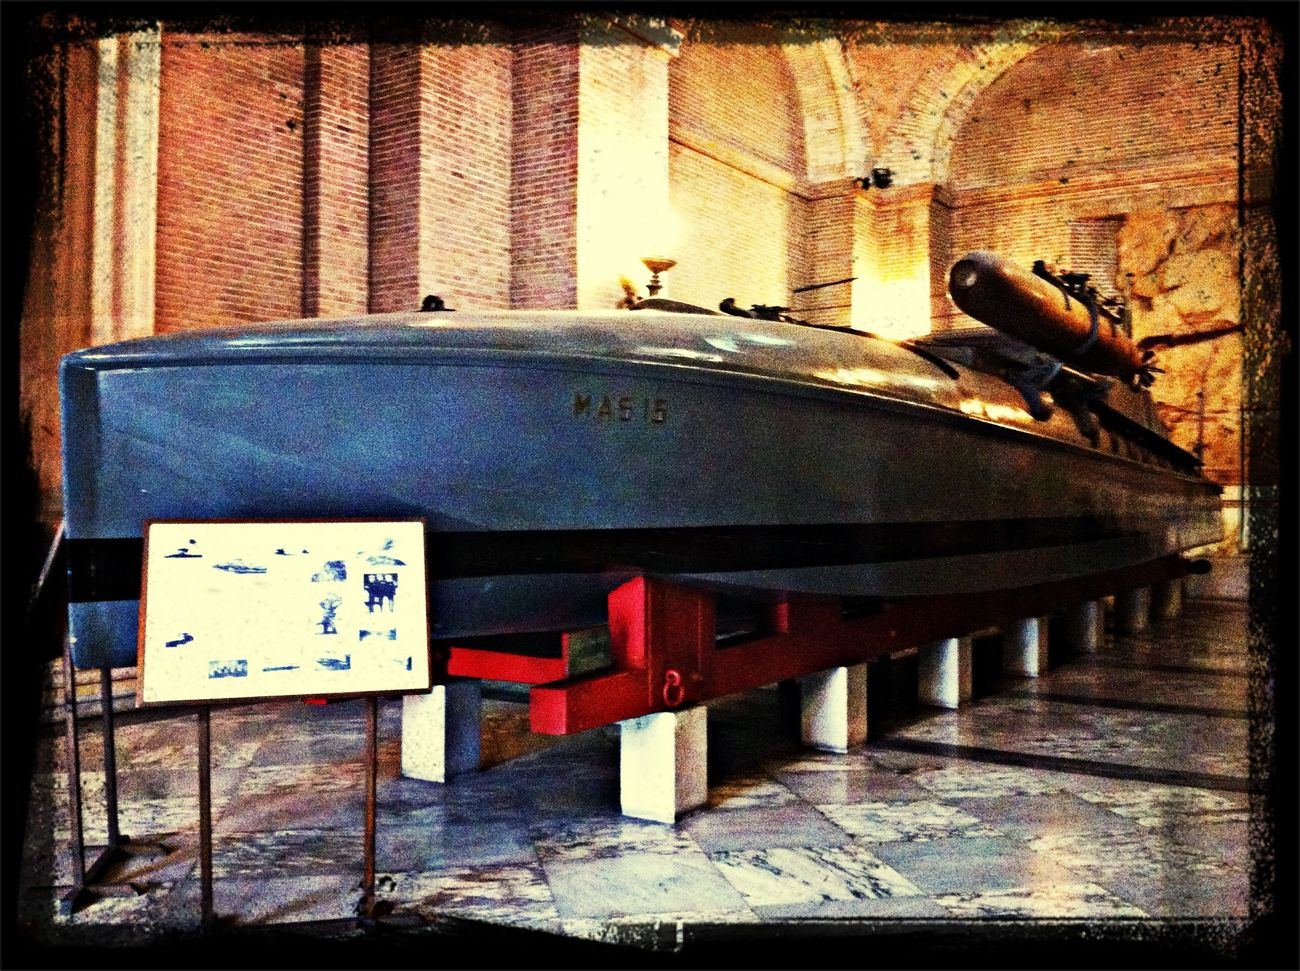 Italian submarine 2nd world war War Submarine Helloworld Getting Inspired